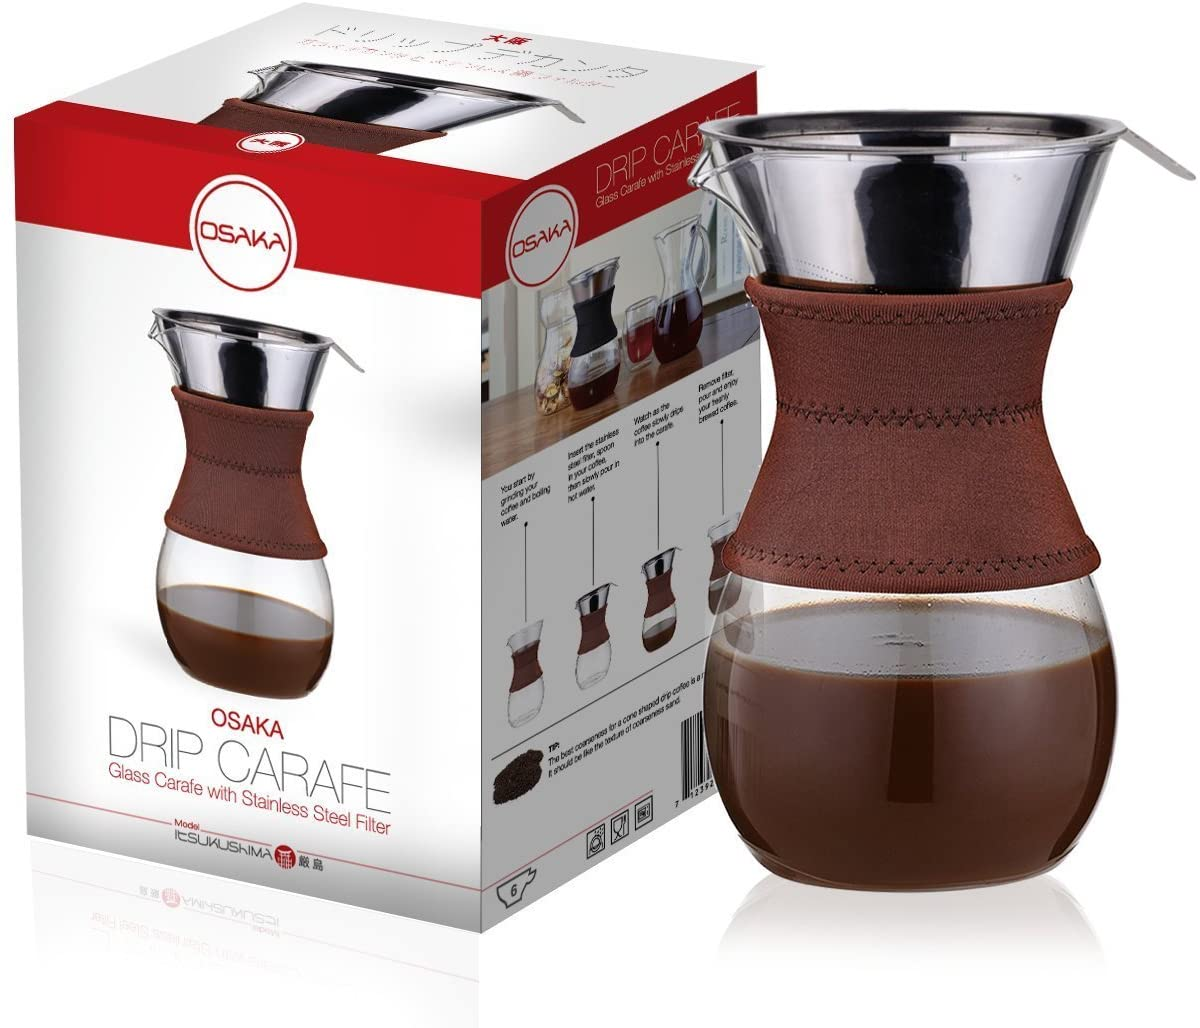 "Osaka pour-over drip brewer, 6 cup (27 oz) glass carafe with permanent stainless steel filter ""itsukushima"""